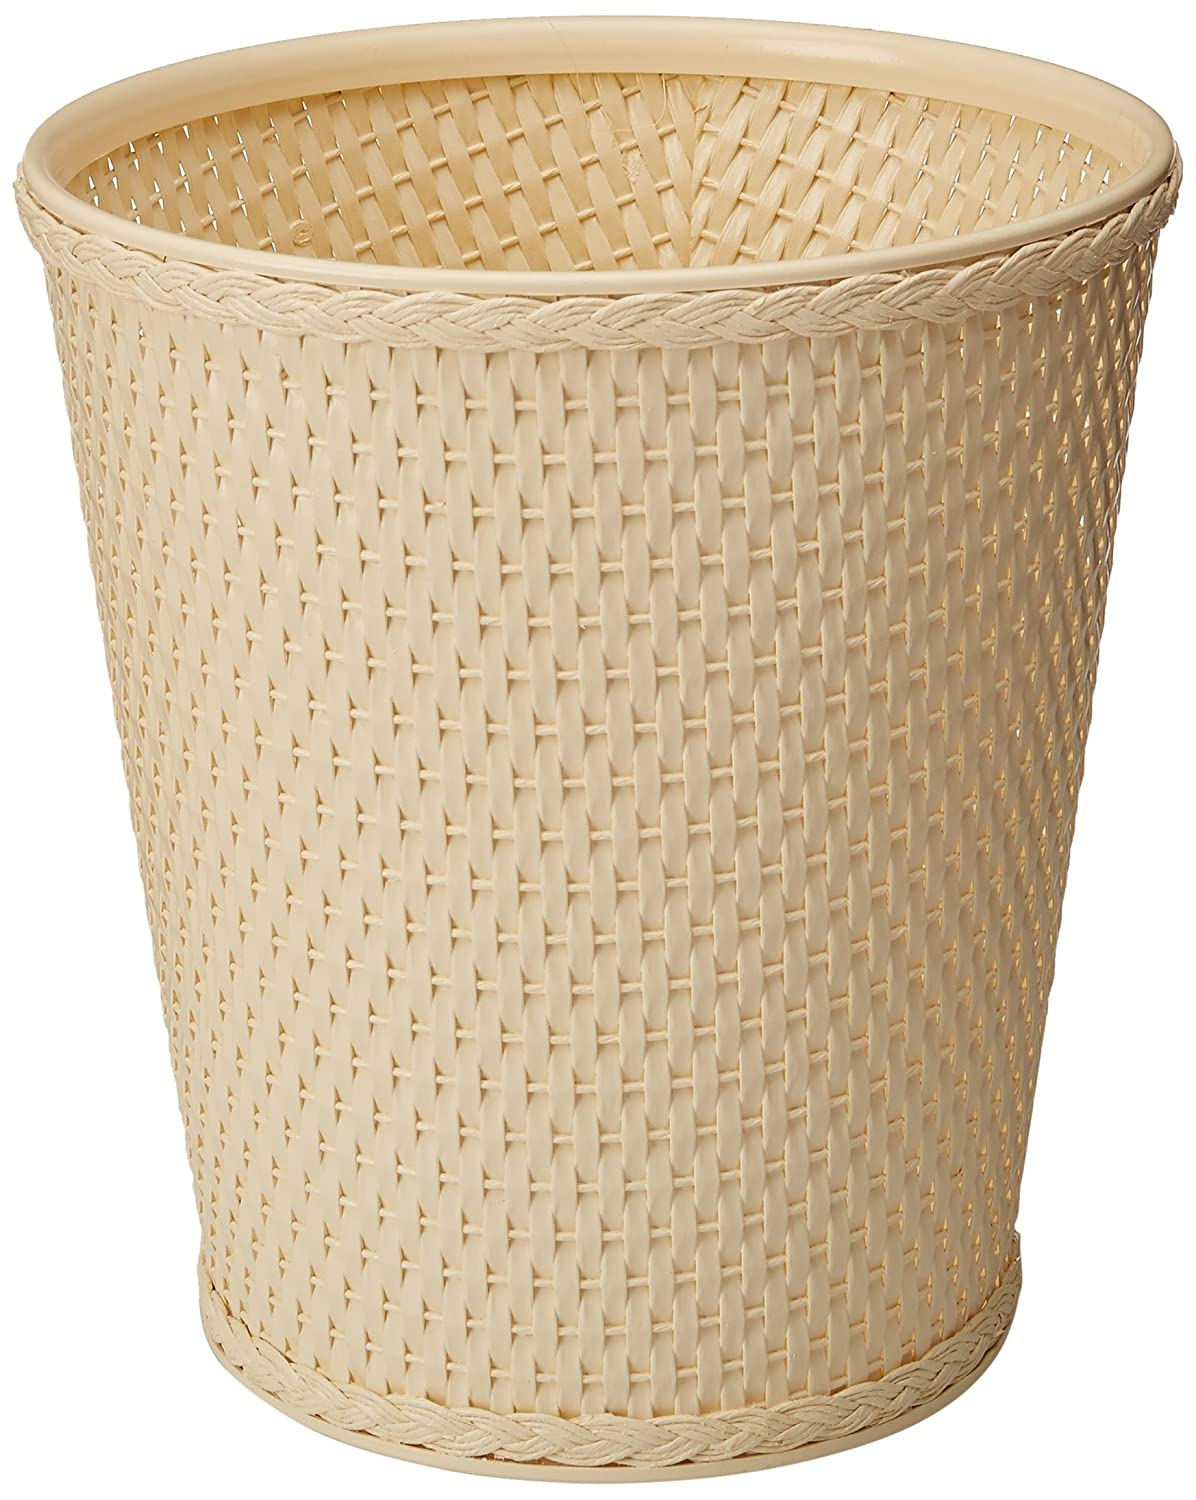 LaMont Home Carter Round Waste-Basket, Cappuccino 1859039